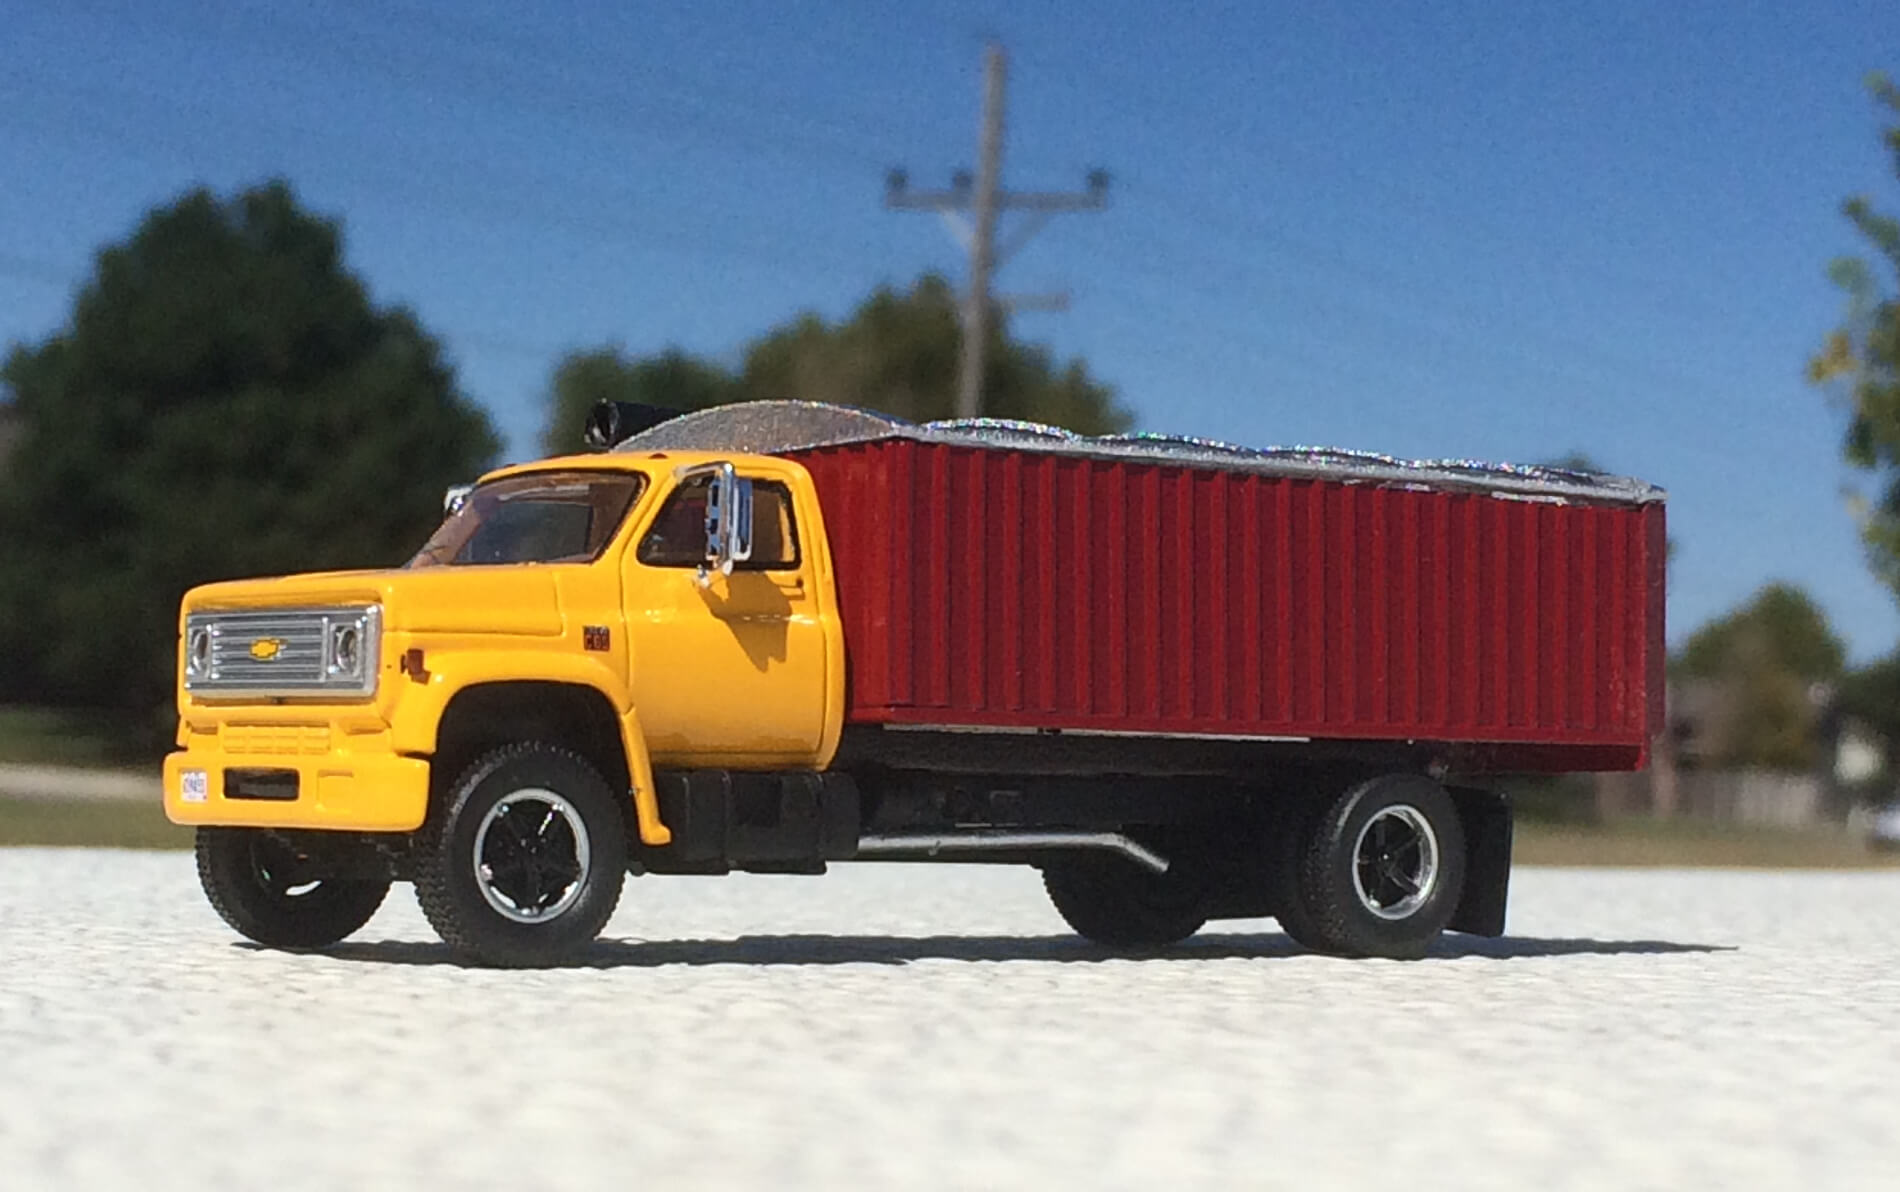 Yellow truck with red dump bed